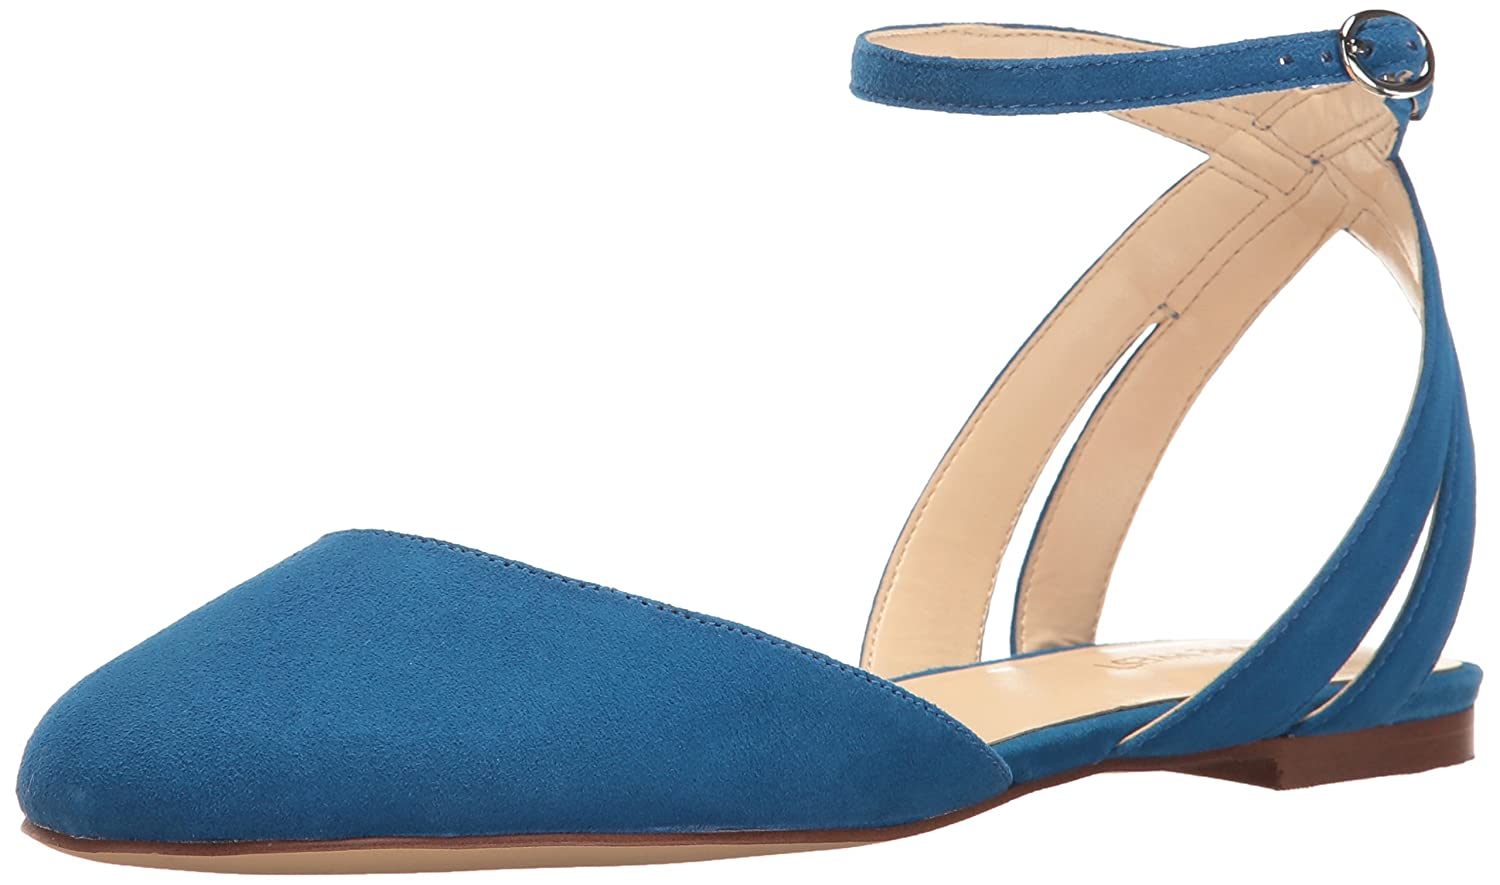 Nine West Women's Begany Suede Ballet Flat B01NCJWWZI 6 B(M) US|Blue